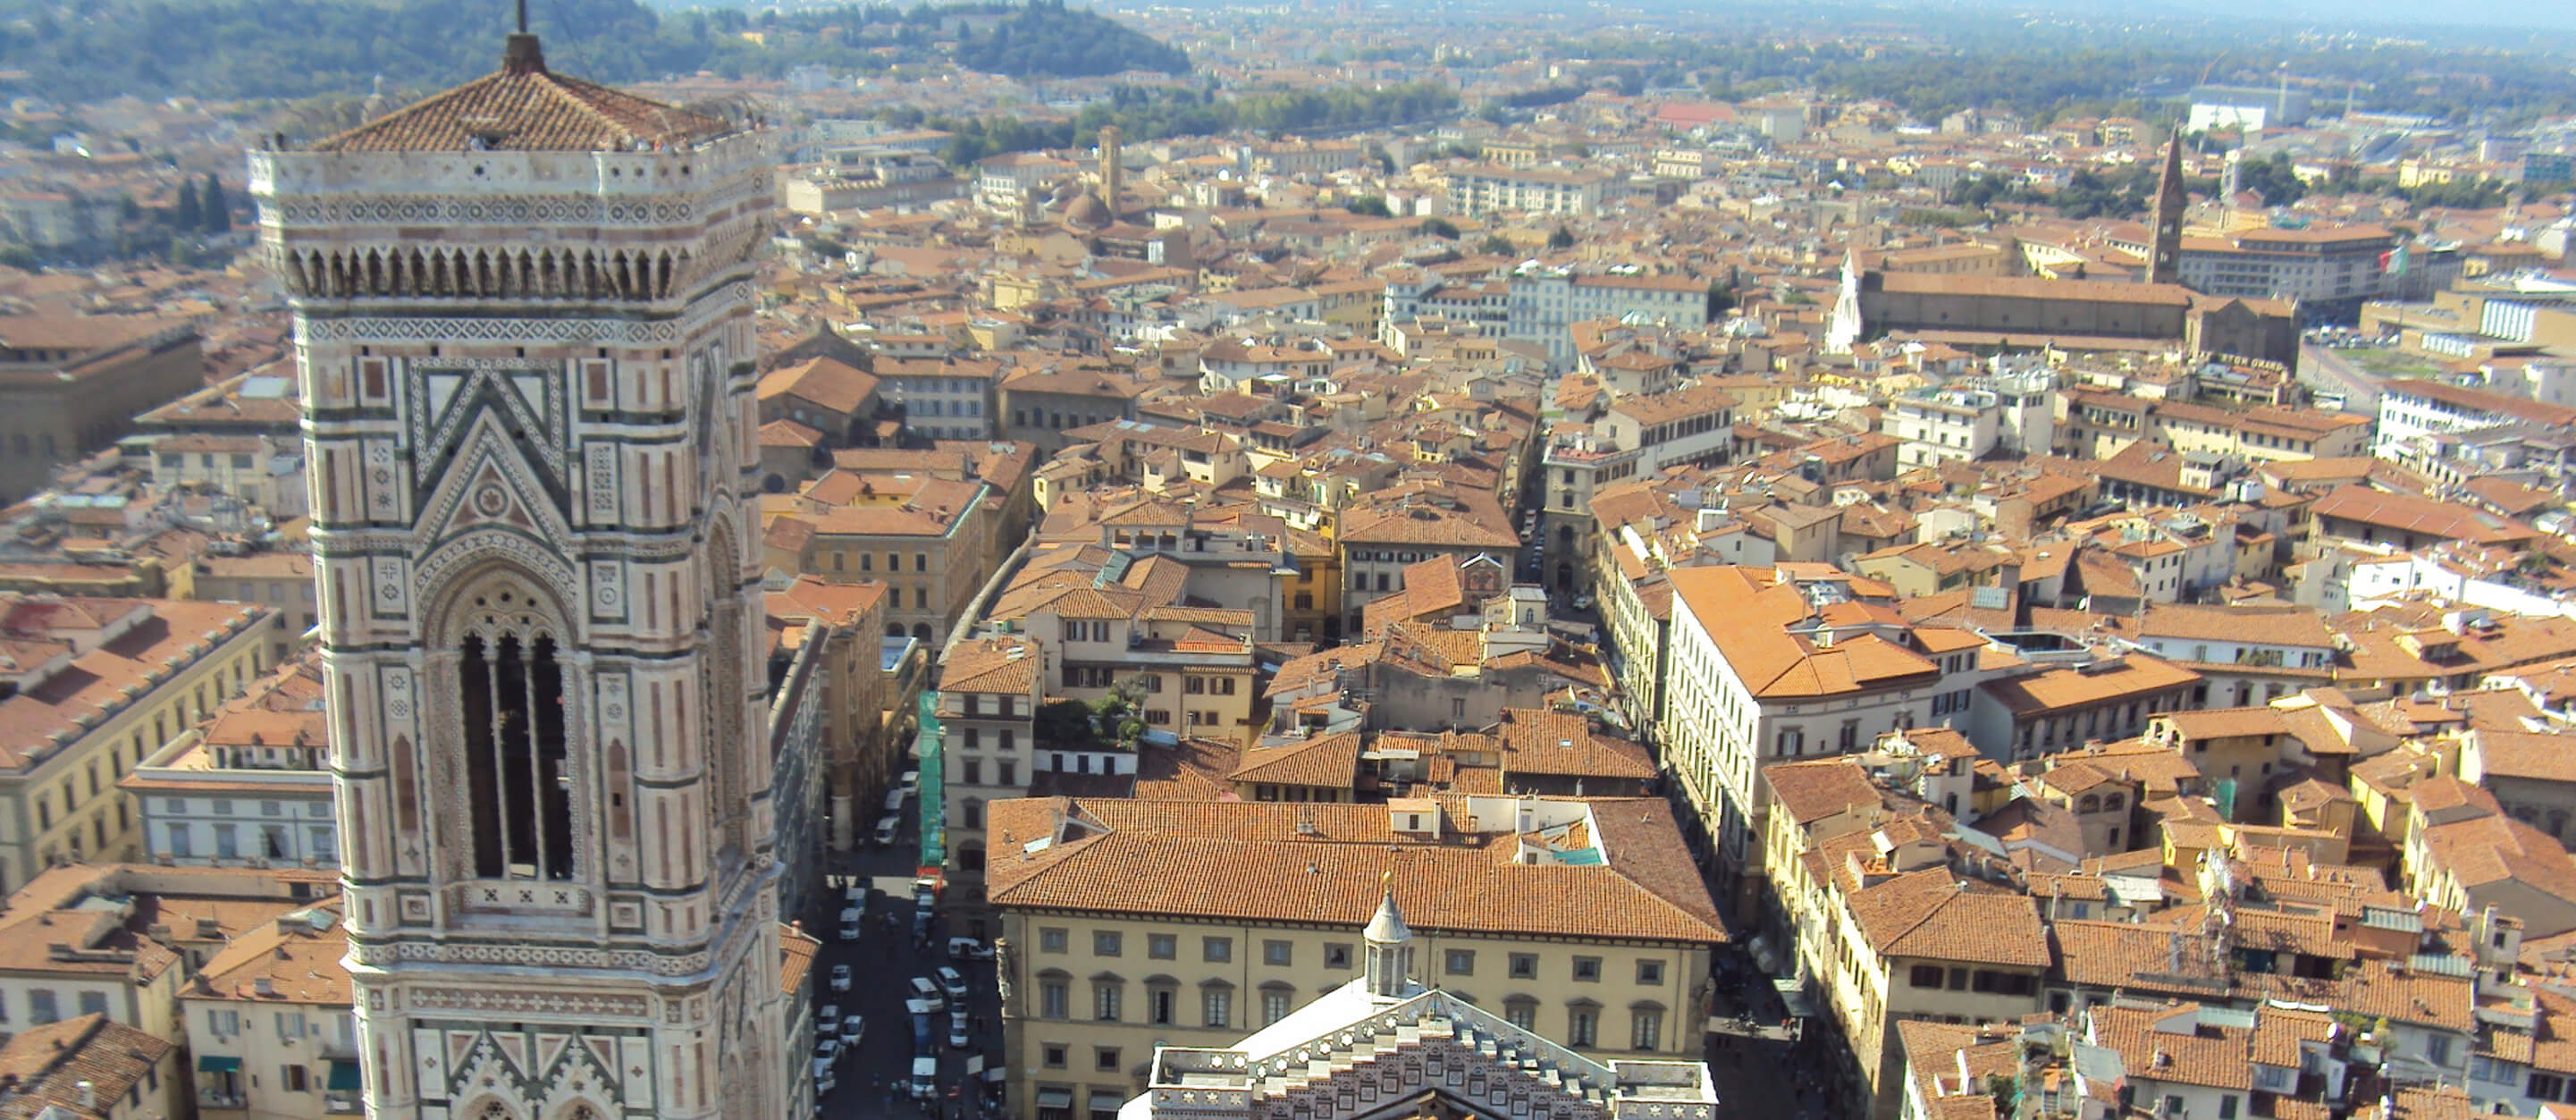 Things To Do In Italy GuideMeRightcom Guides - 10 things to see and do in florence